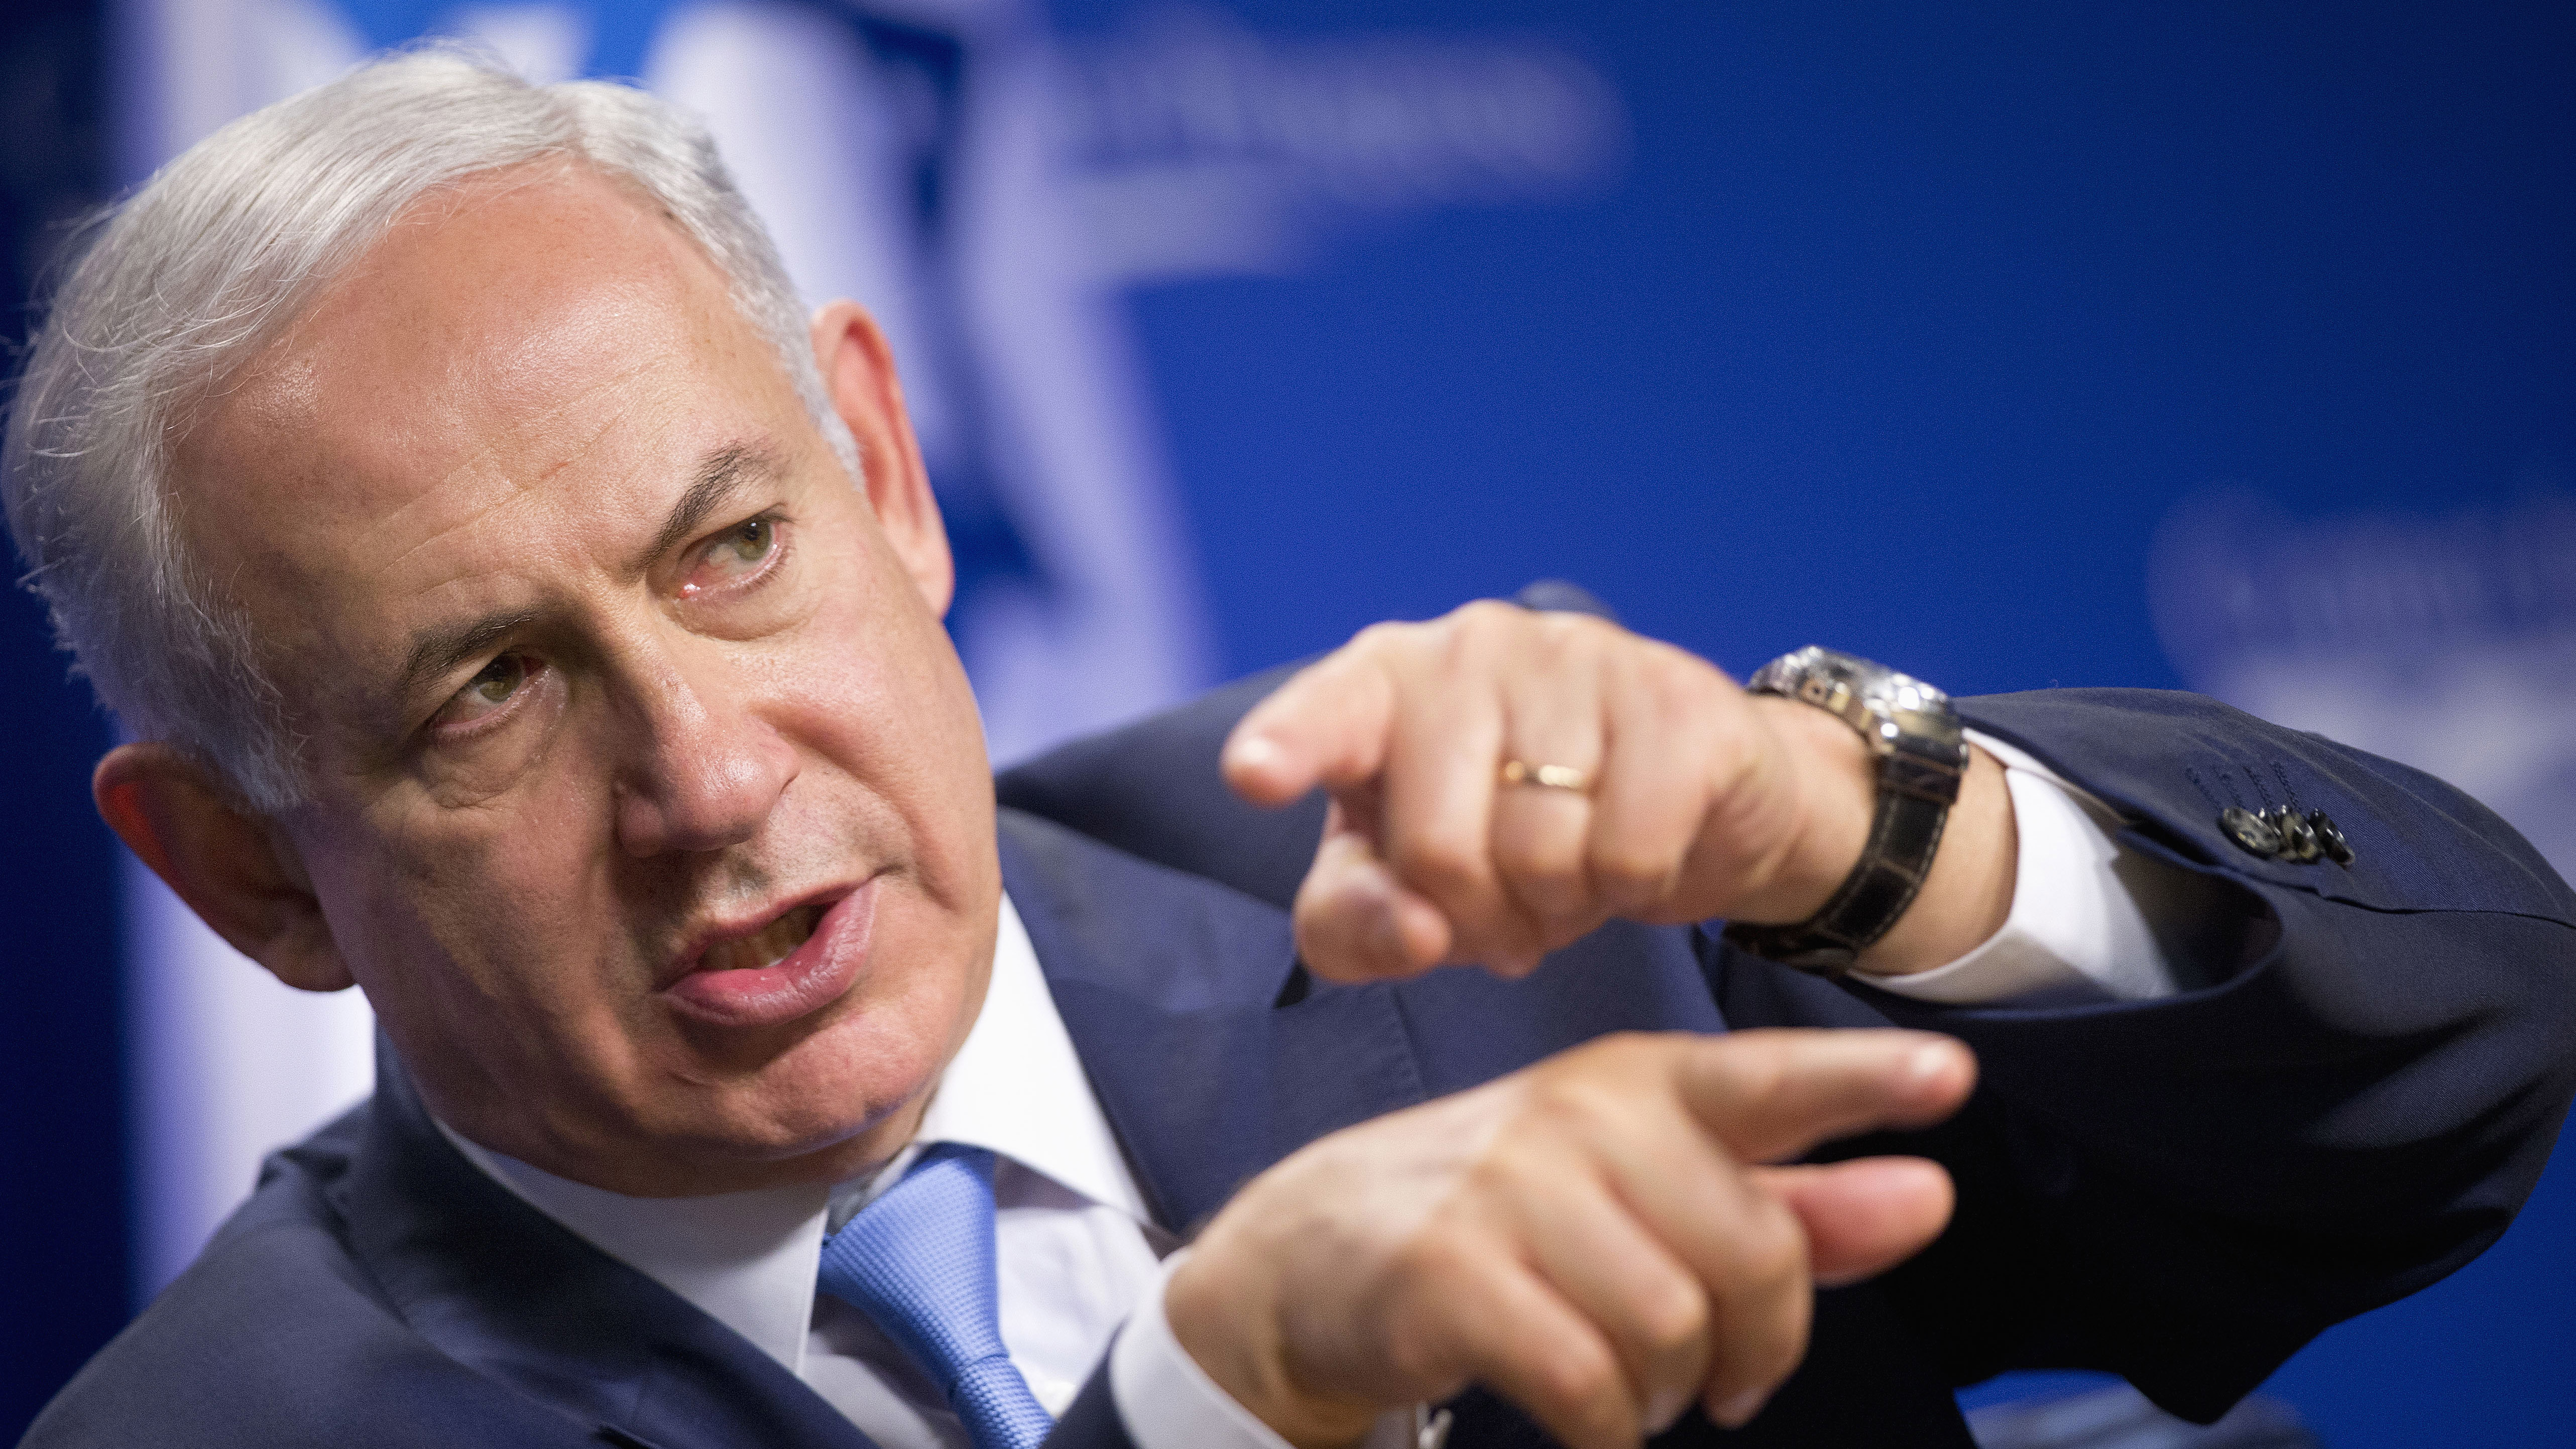 In this file photo, Israeli Prime Minister Benjamin Netanyahu speaks at the Center for American Progress, Tuesday, Nov. 10, 2015, in Washington.